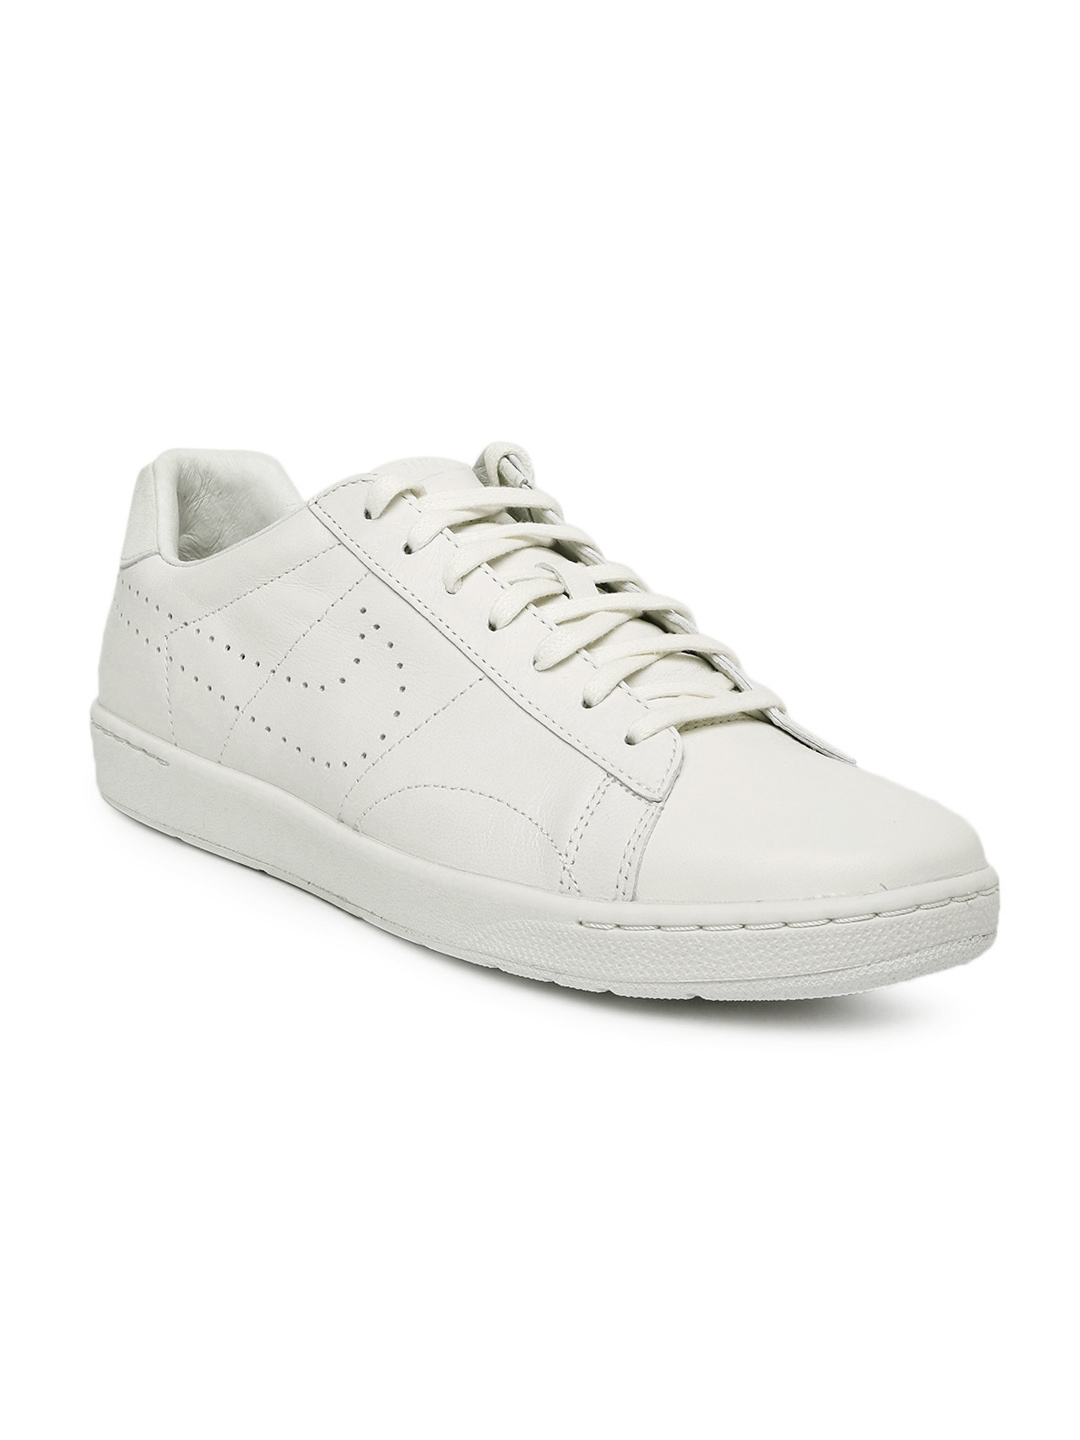 the best attitude ecb00 93deb Nike Men White Tennis Classic Ultra Leather Sneakers